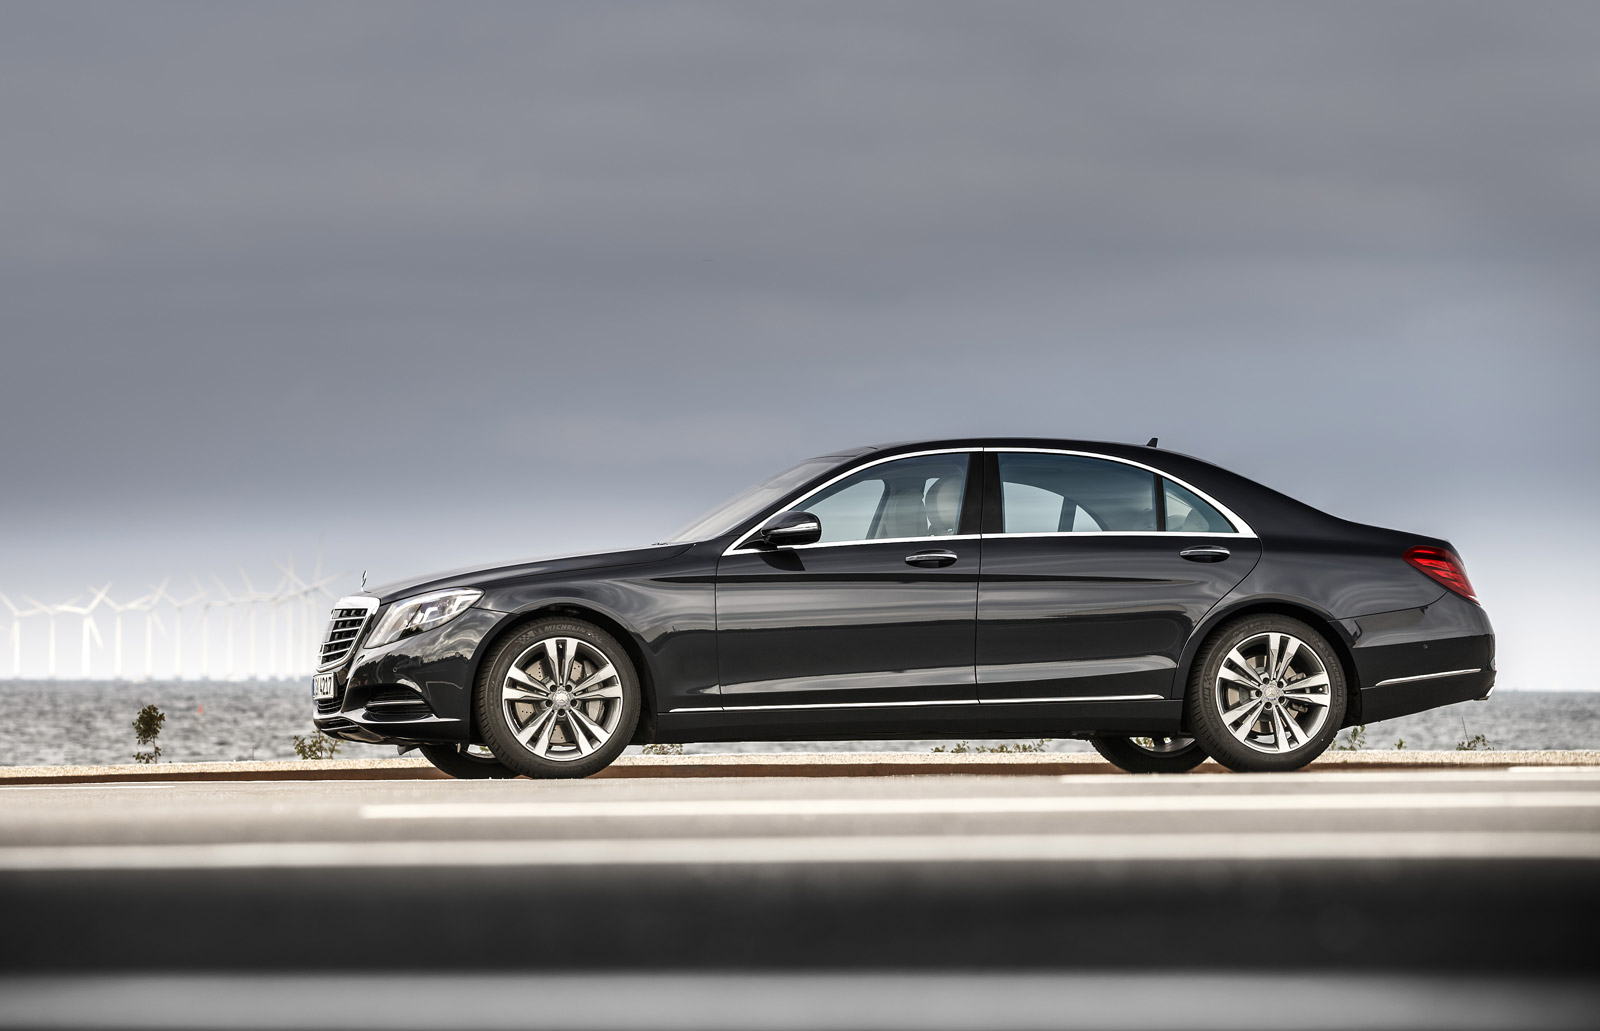 Bmw 7 series vs mercedes benz s class compare cars for Bmw mercedes benz